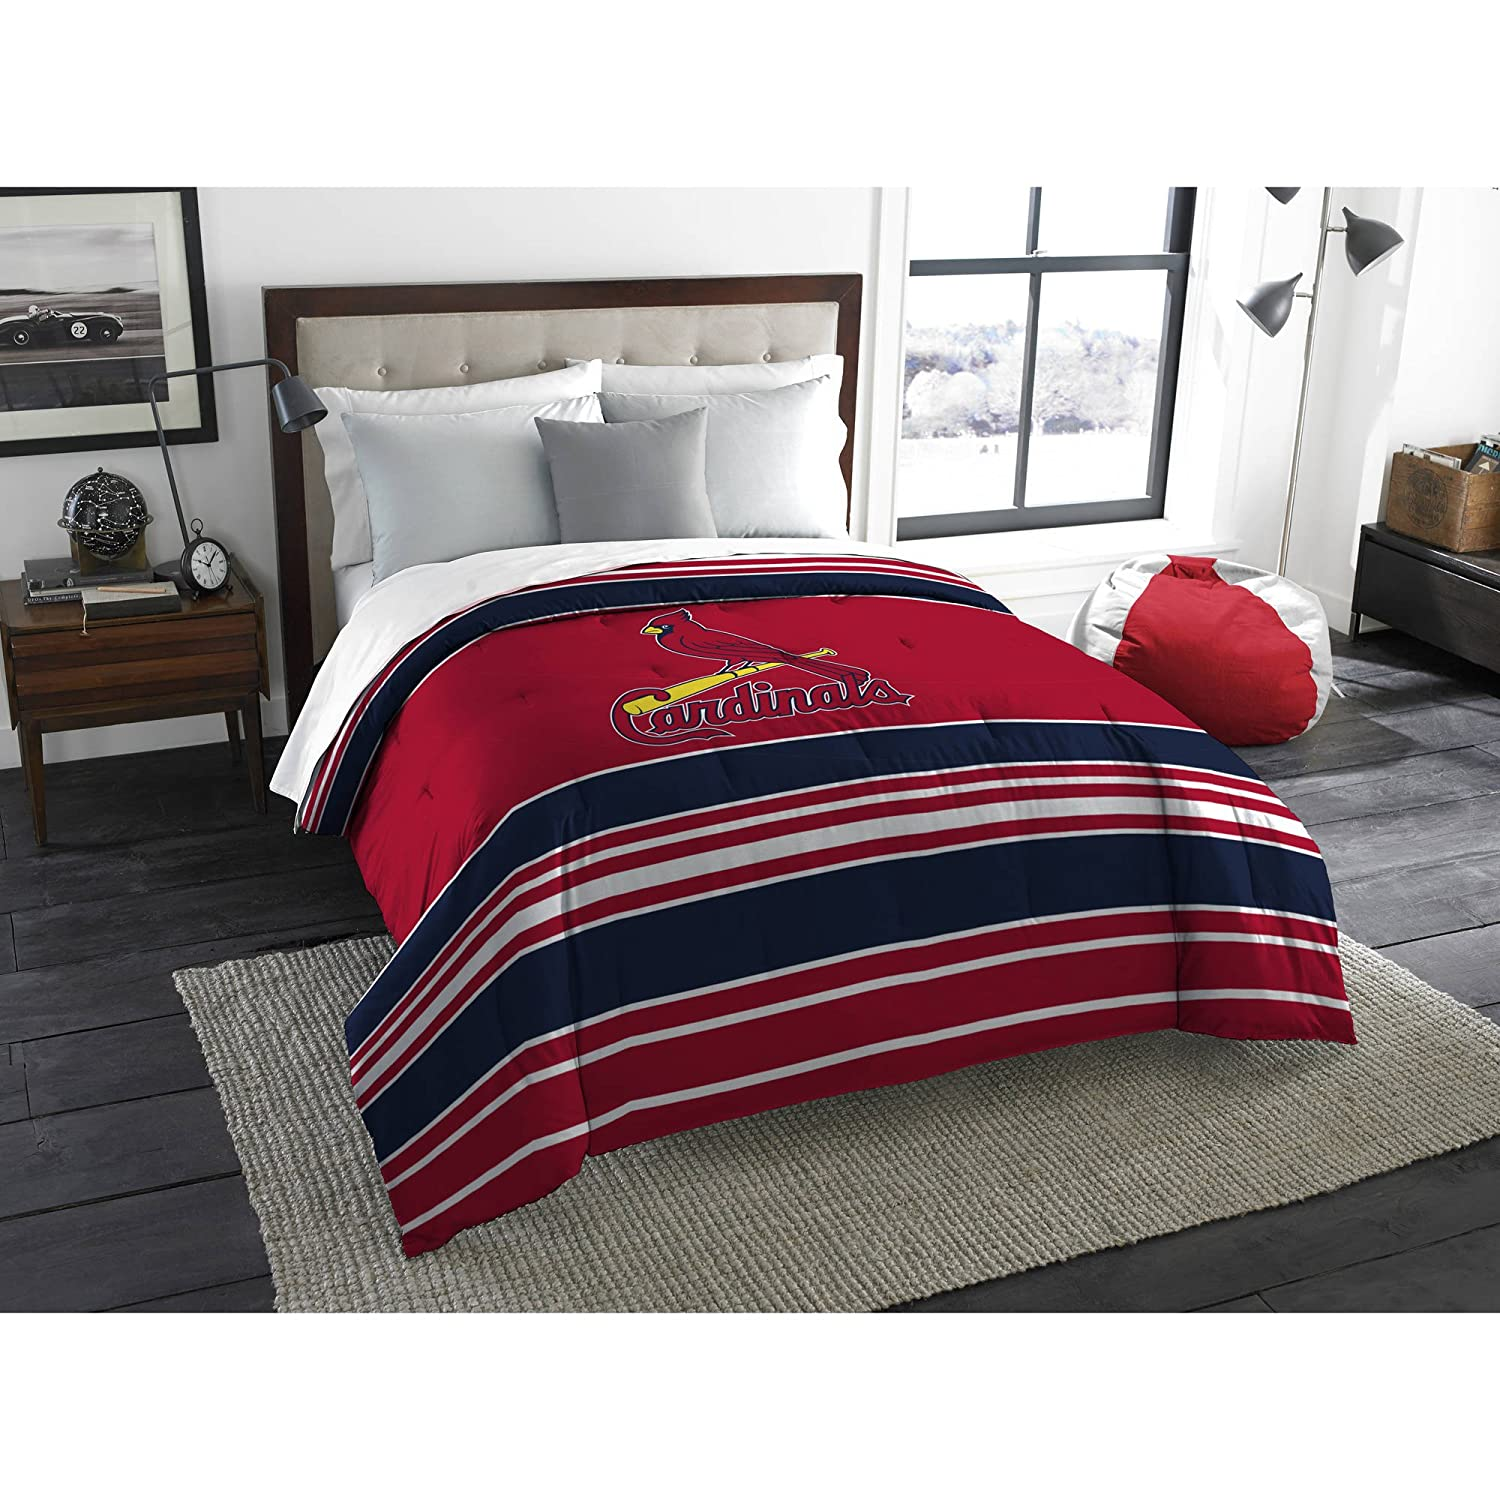 The Northwest Company MLB St. Louis Cardinals Stripe Life Twin/Full Bedding Comforter #52593262